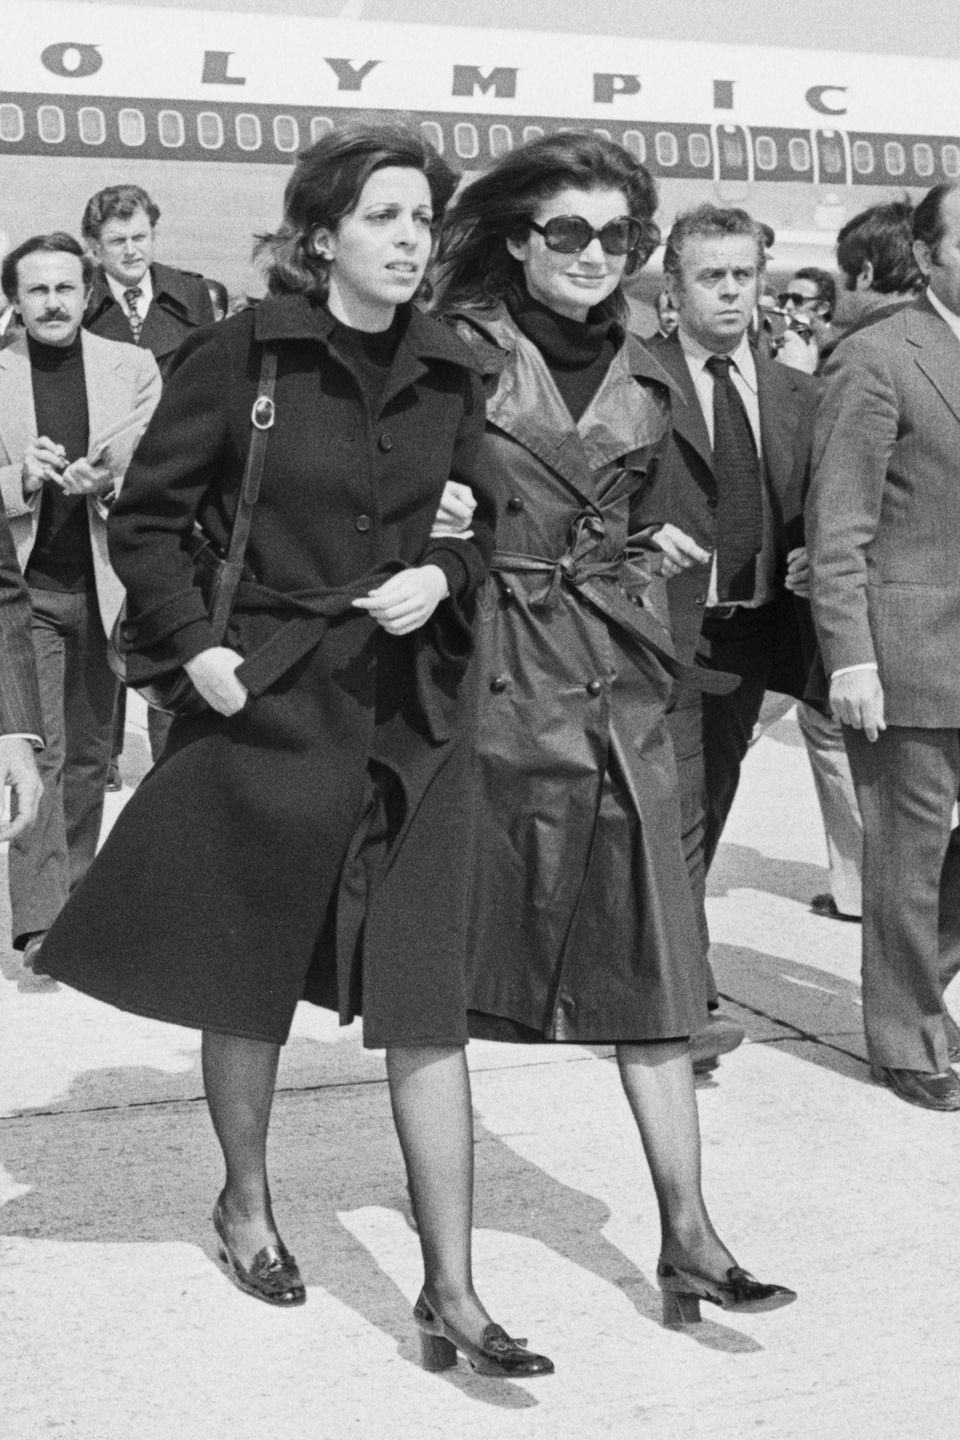 <p>Jackie Onassis and her stepdaughter, Christina, wore these block-heel loafers as they touched down in Greece. Like kitten heels, the block heel had a sensible height but still worked for dressier occasions. </p>